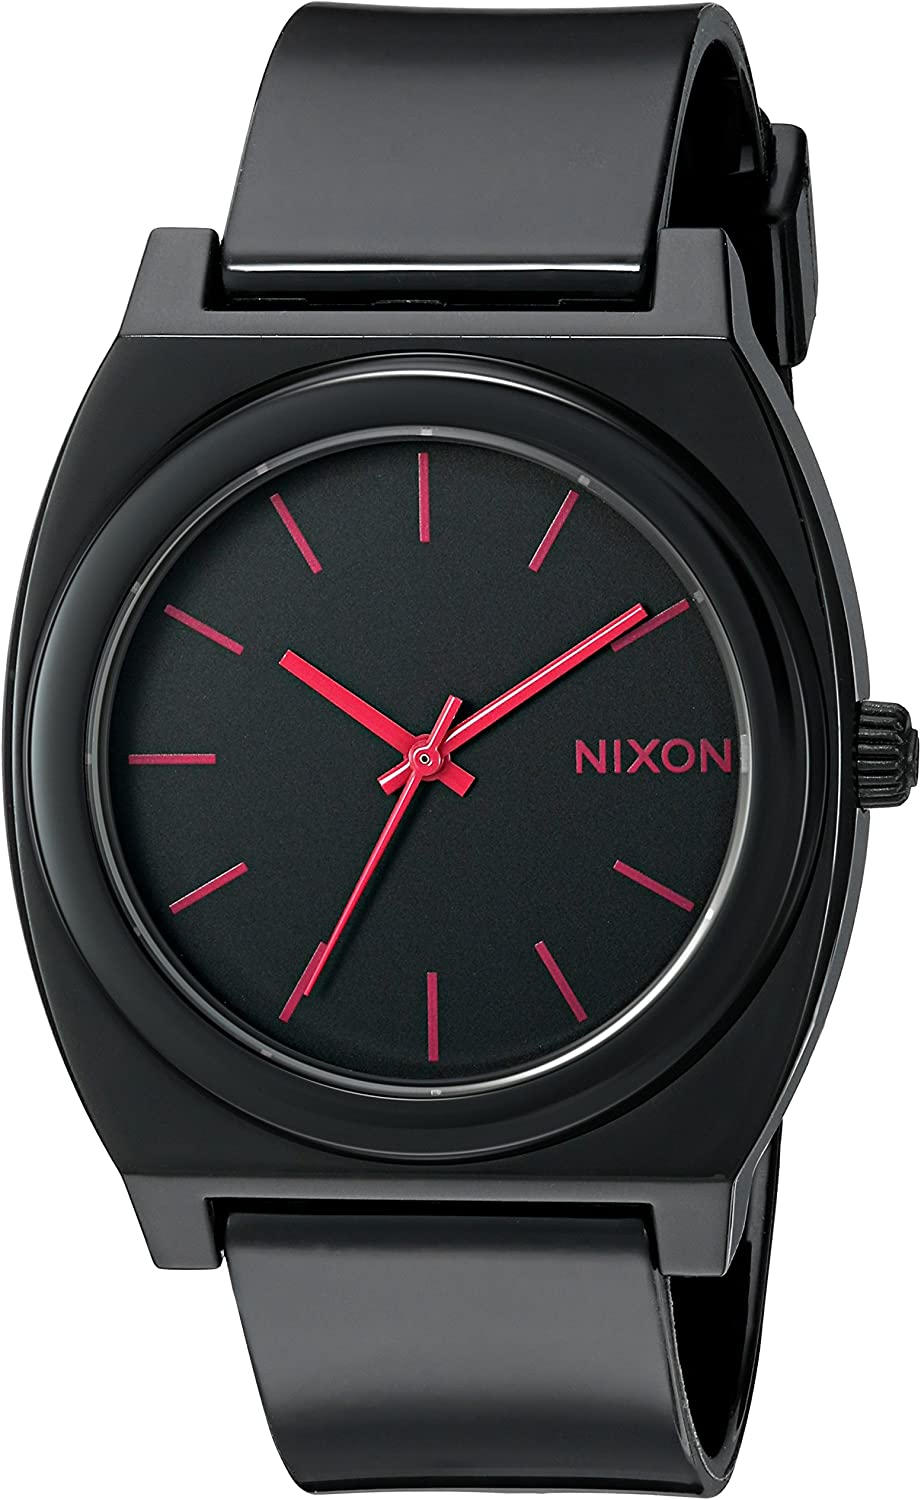 Nixon Time Teller P -Spring 2017- Black/Bright Pink